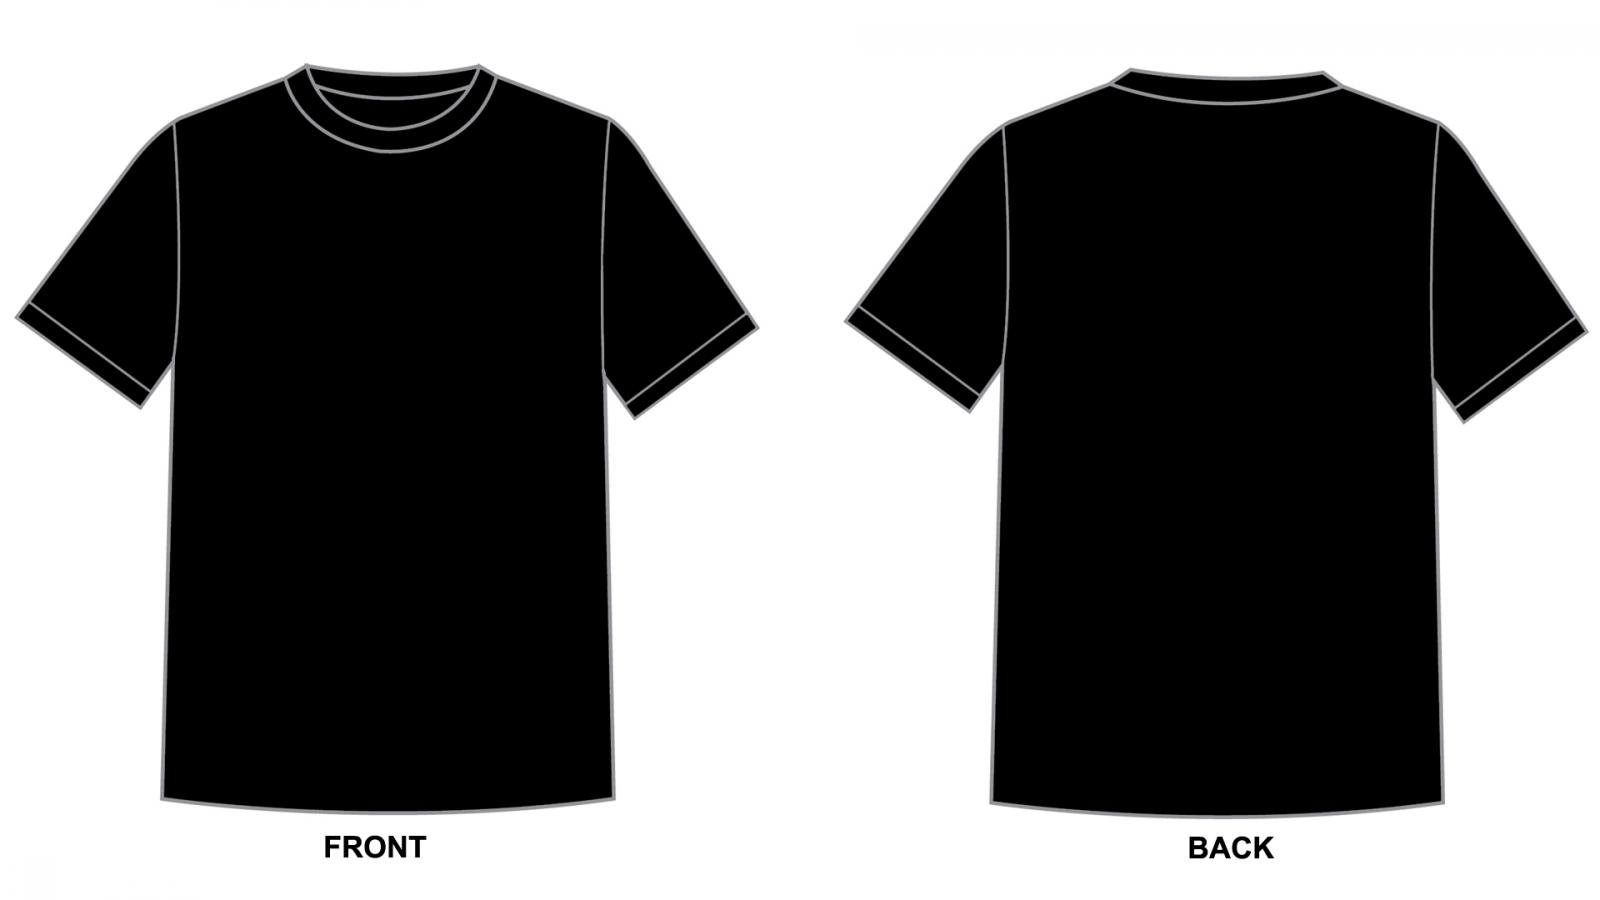 blank tshirt template black in 1080p hd wallpapers for free. Black Bedroom Furniture Sets. Home Design Ideas